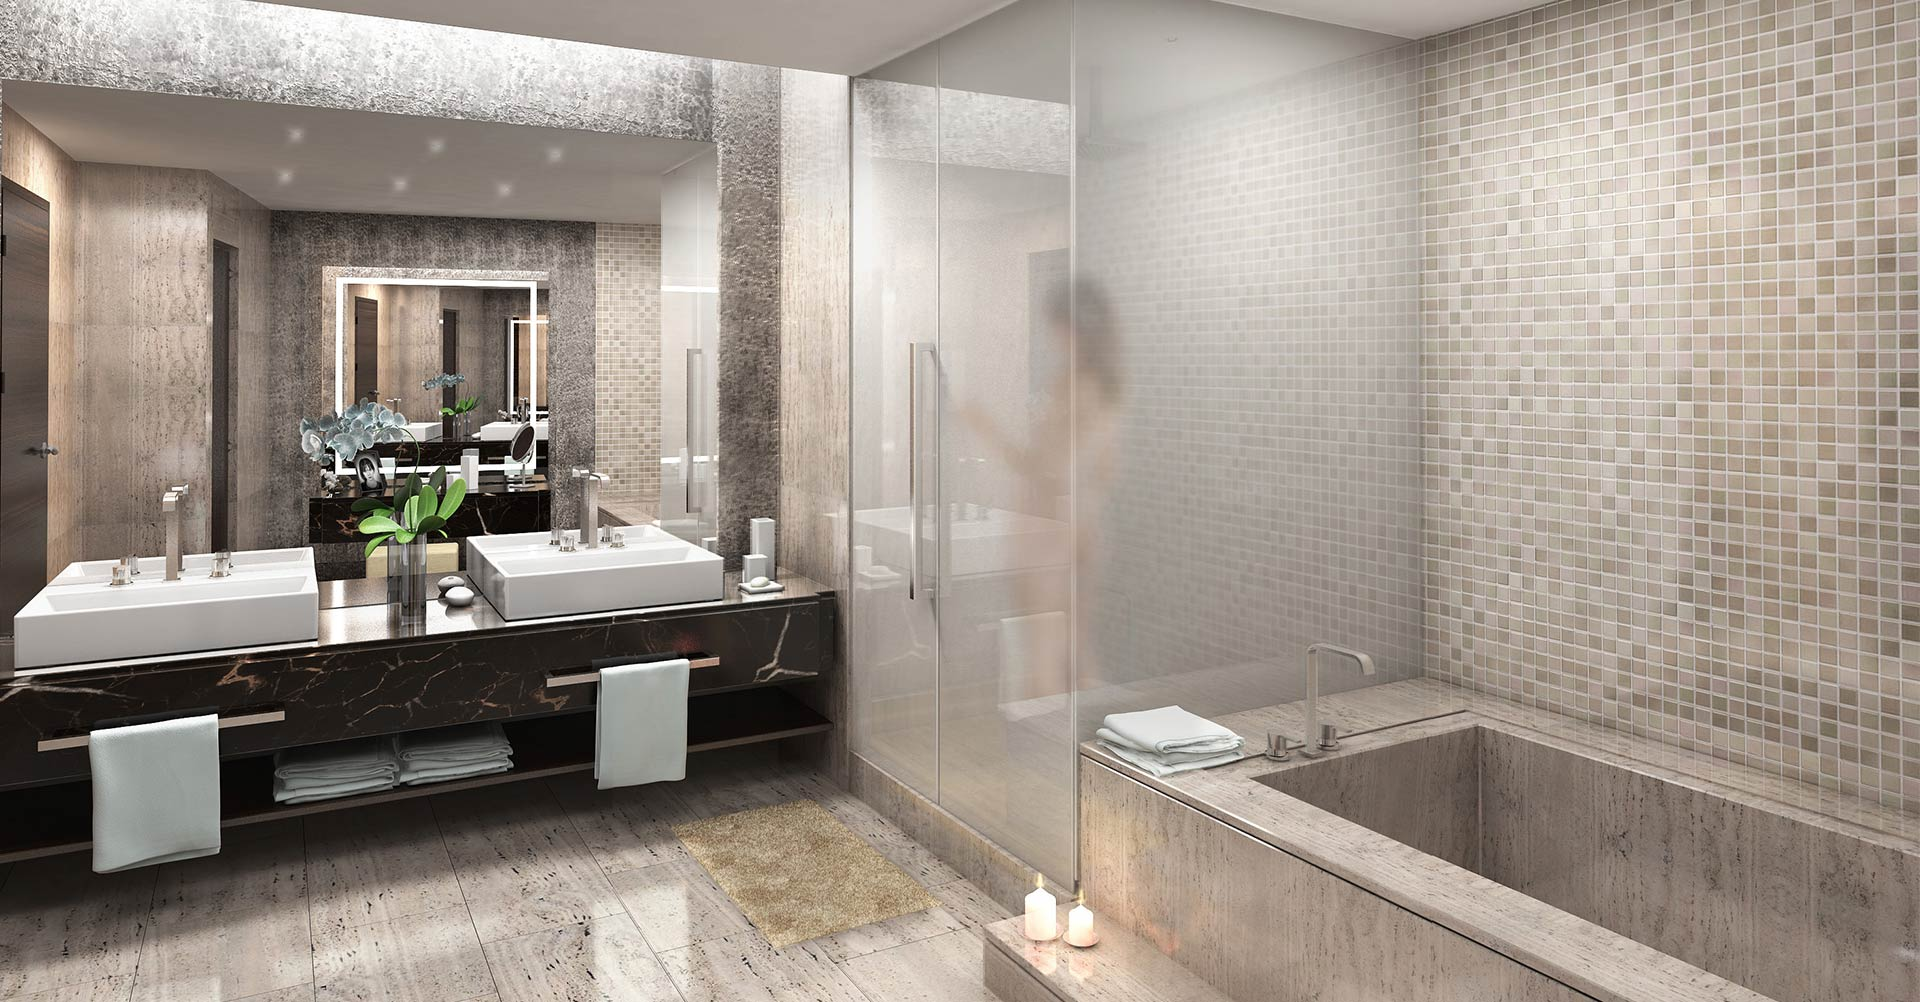 echo aventura luxury condos bathroom   new build homes